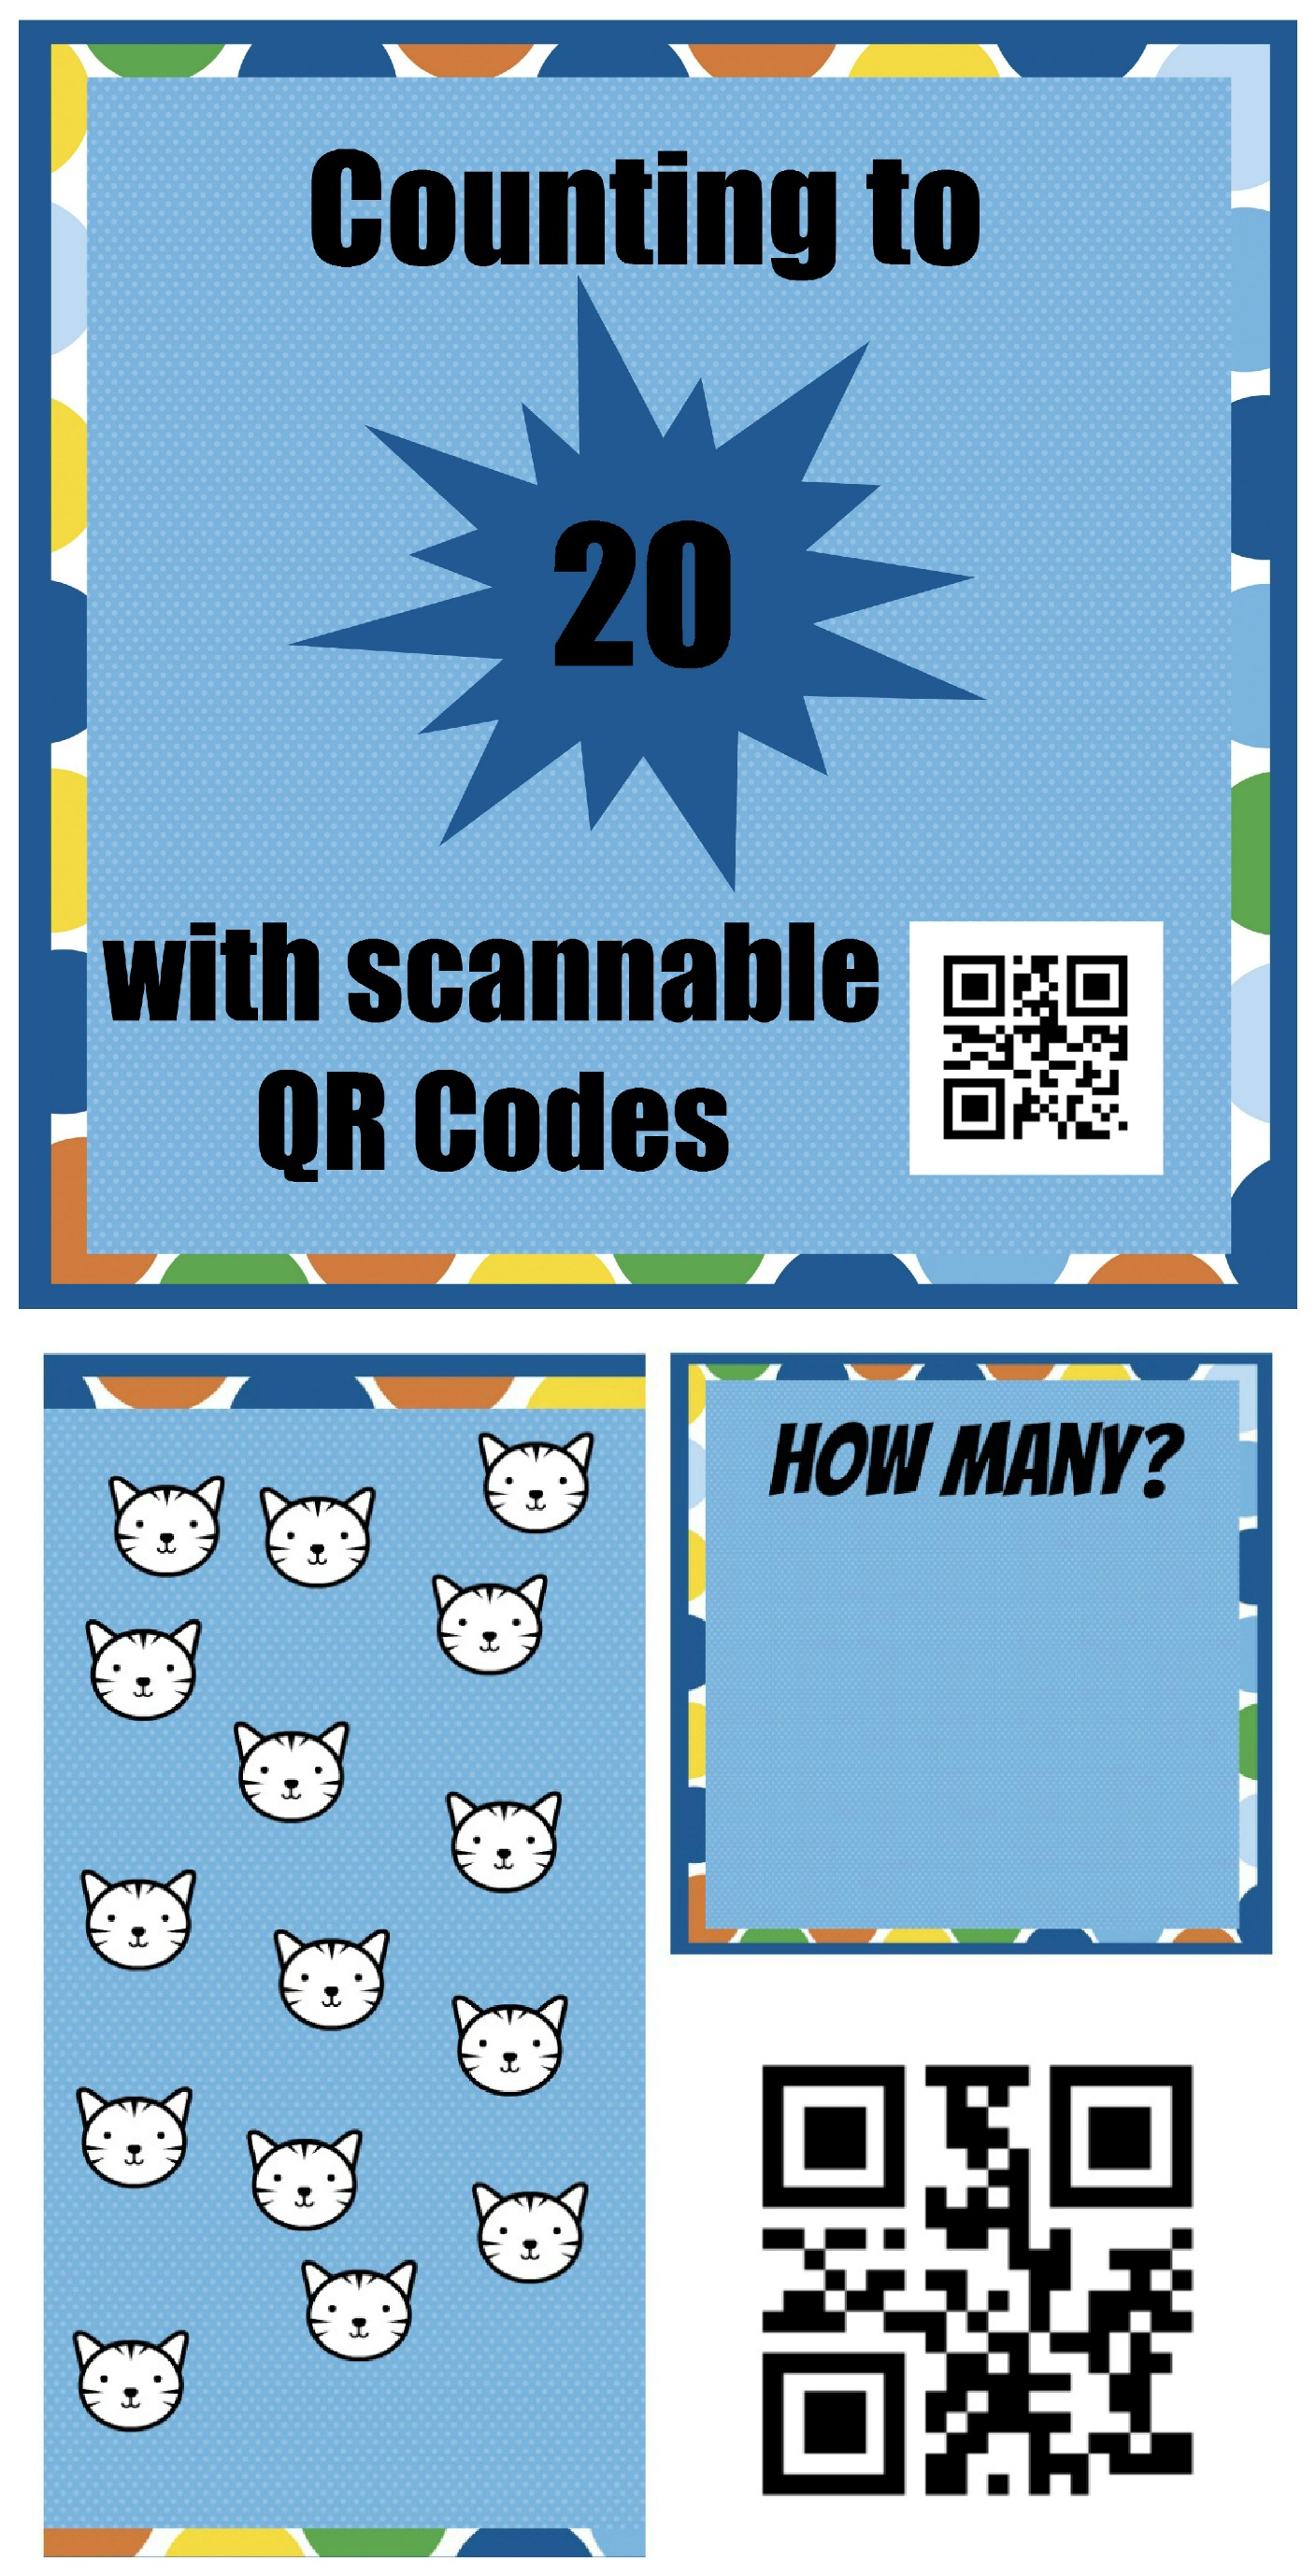 QR Codes for Counting - Technology In Early Childhood